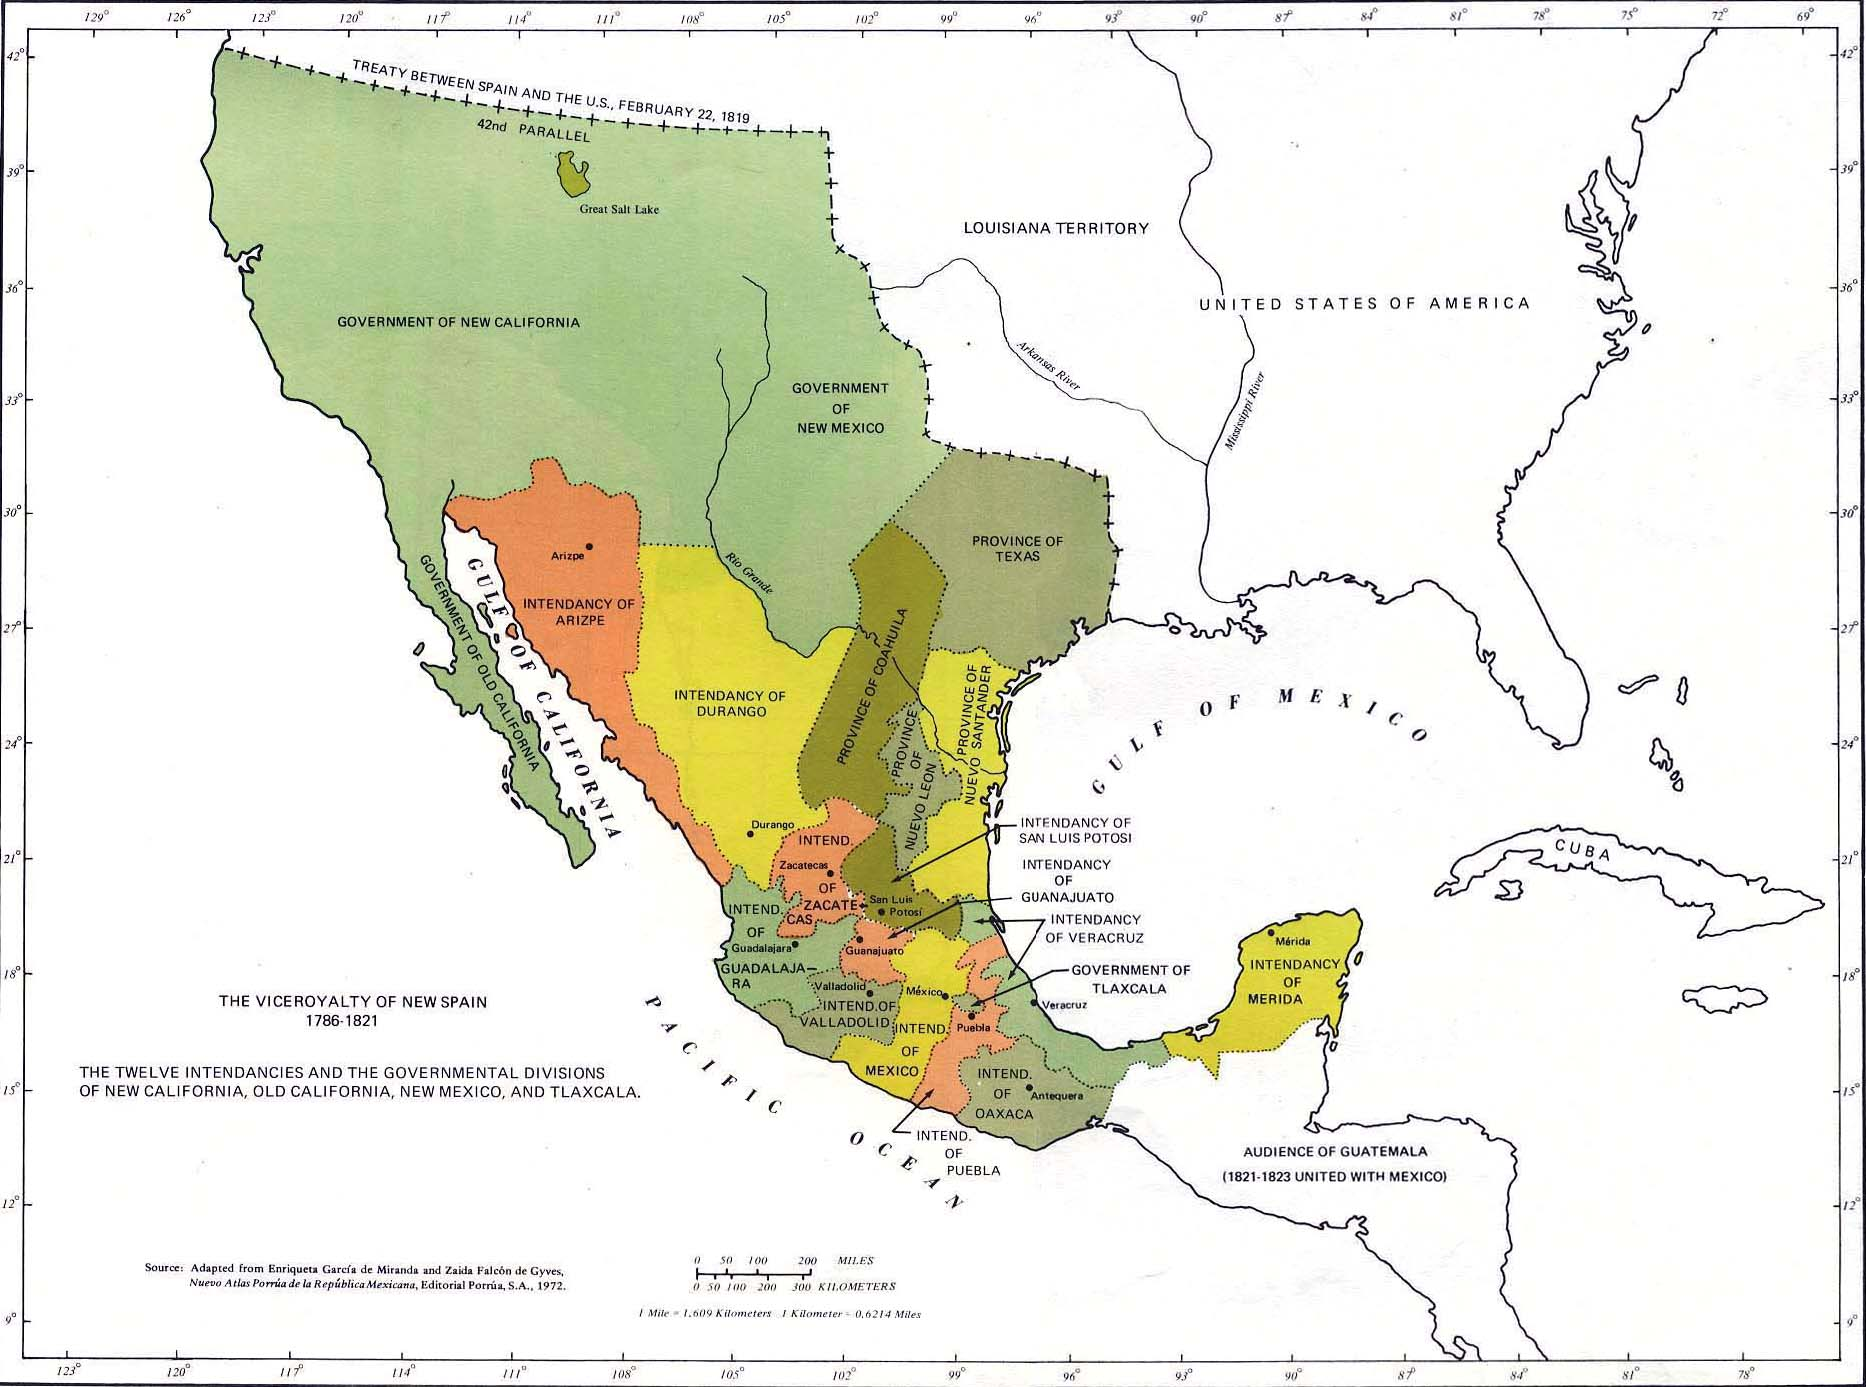 Map of Mexico - The Viceroyalty of New Spain, 1786-1821